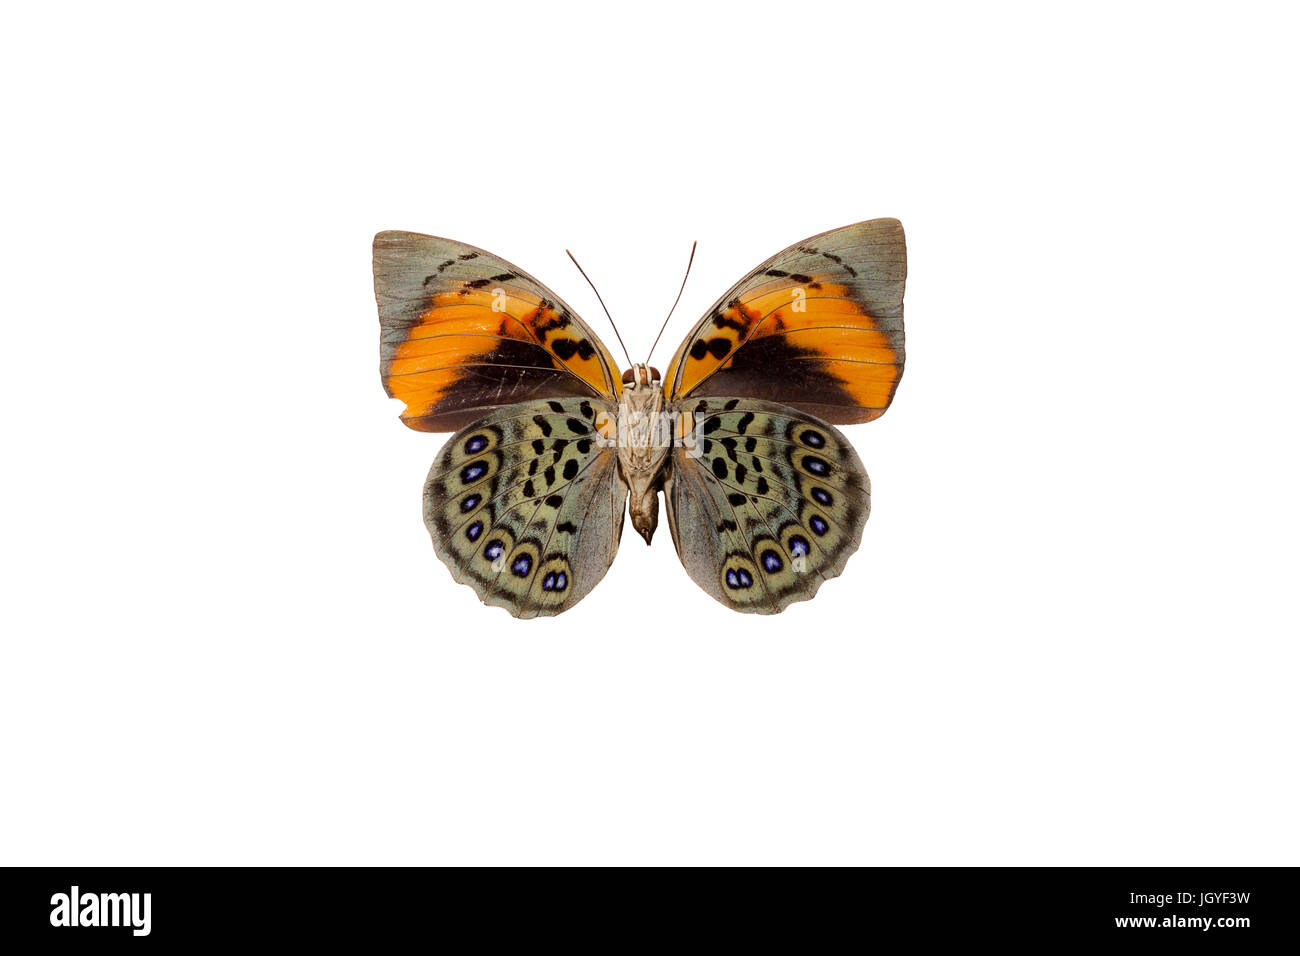 Agrias narcissus is a rare and evasive butterfly of the family Nymphalidae. From French Guiana. - Stock Image